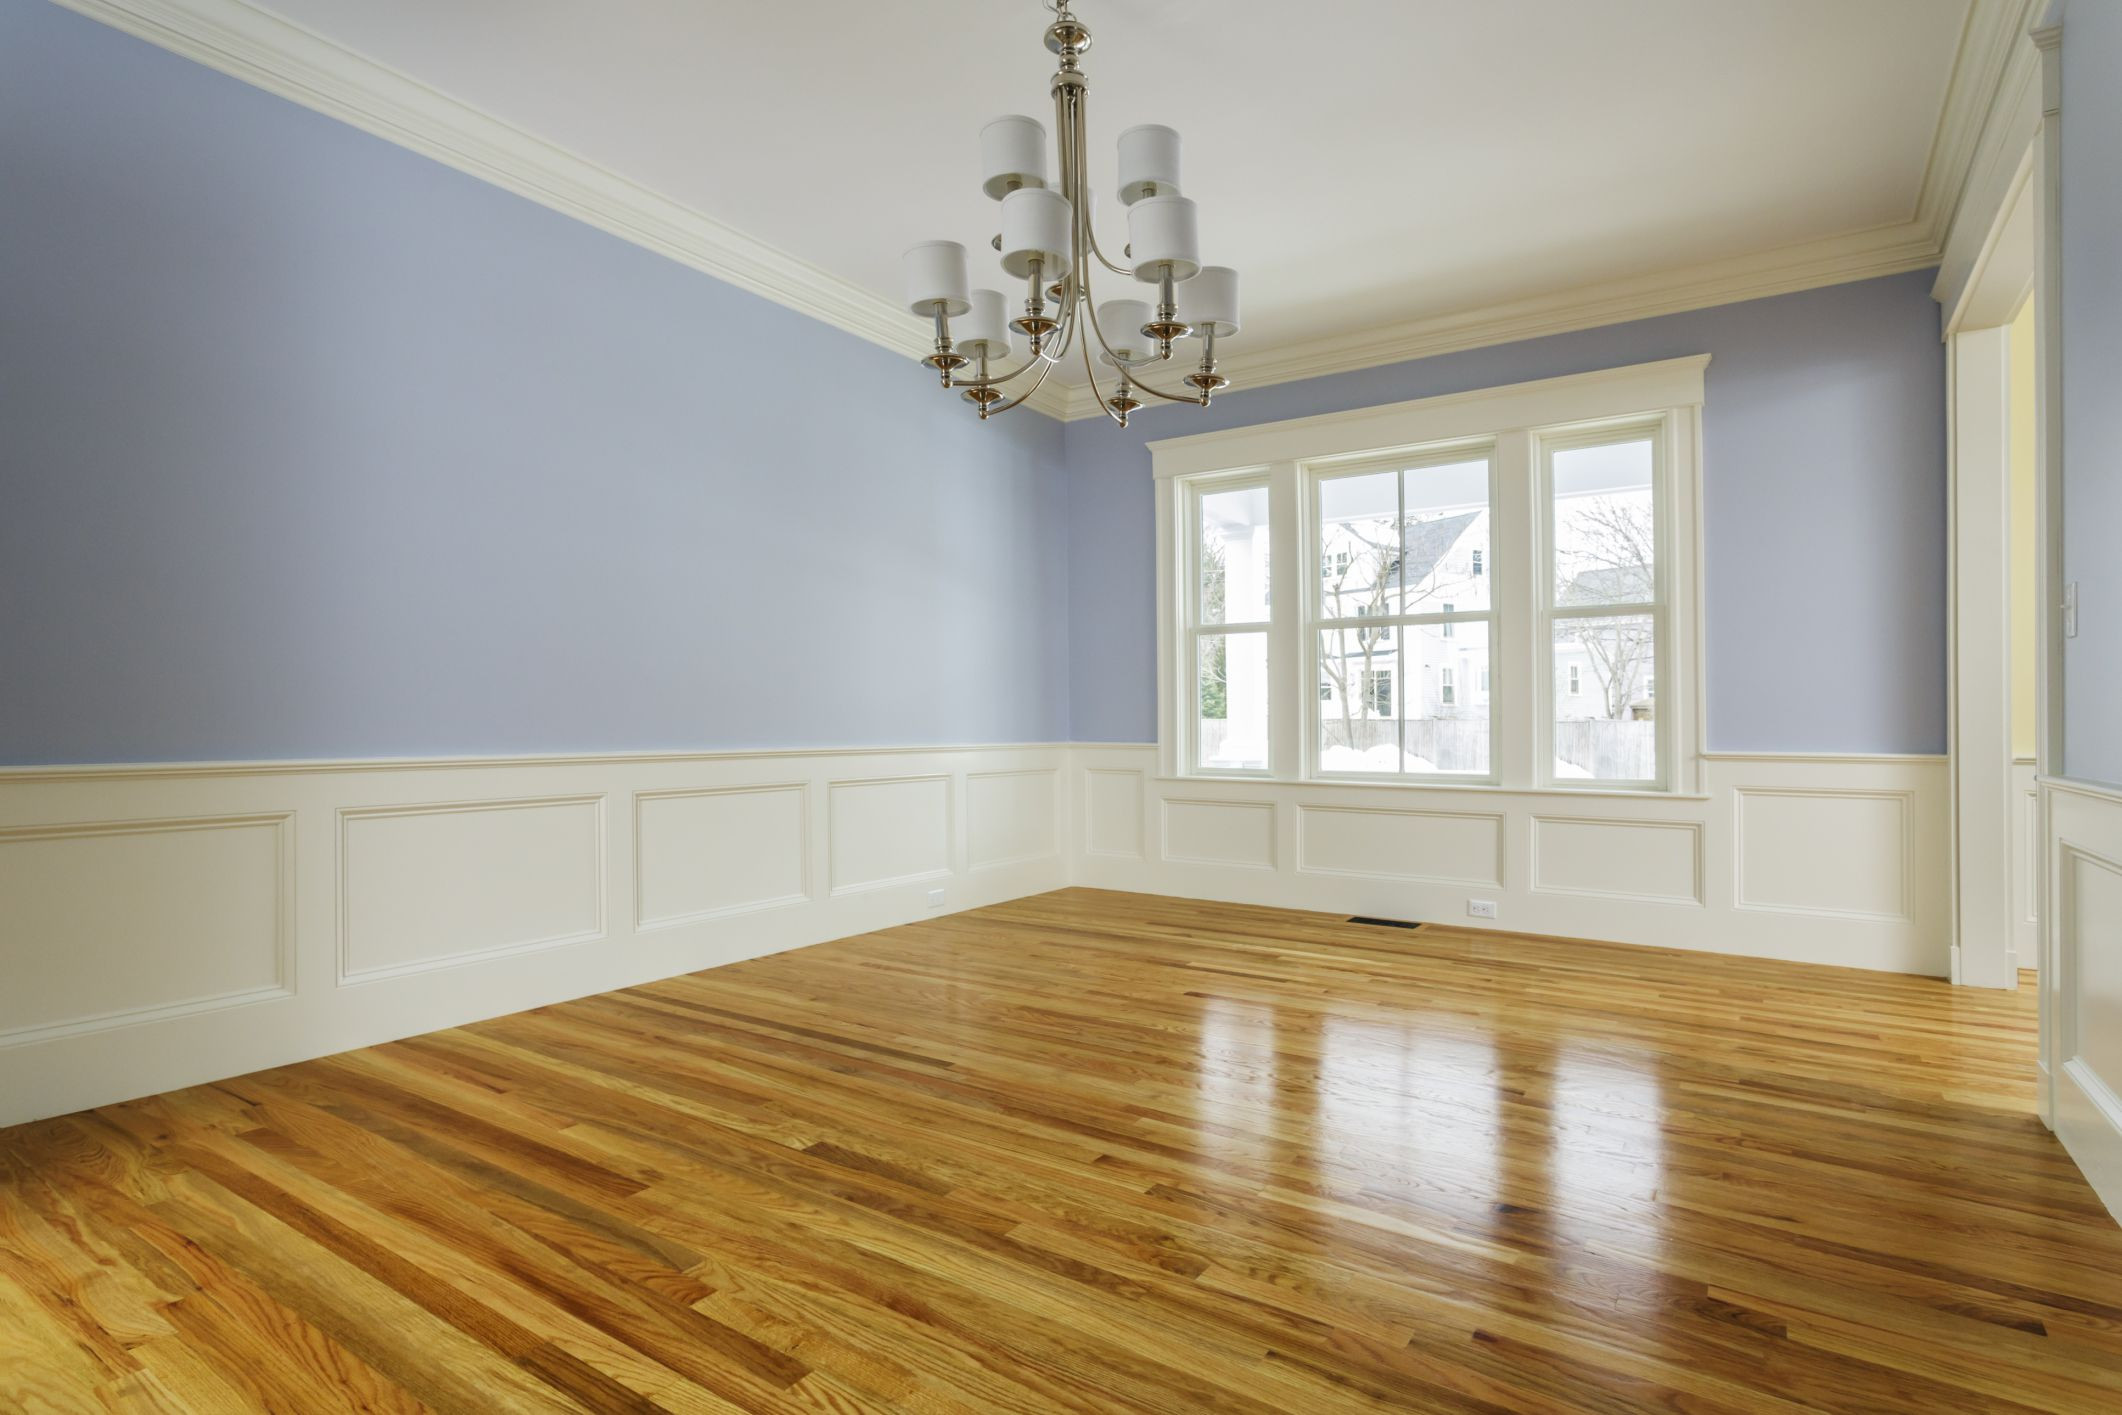 how much does refinishing hardwood floors cost of the cost to refinish hardwood floors with 168686572 highres 56a2fd773df78cf7727b6cb3